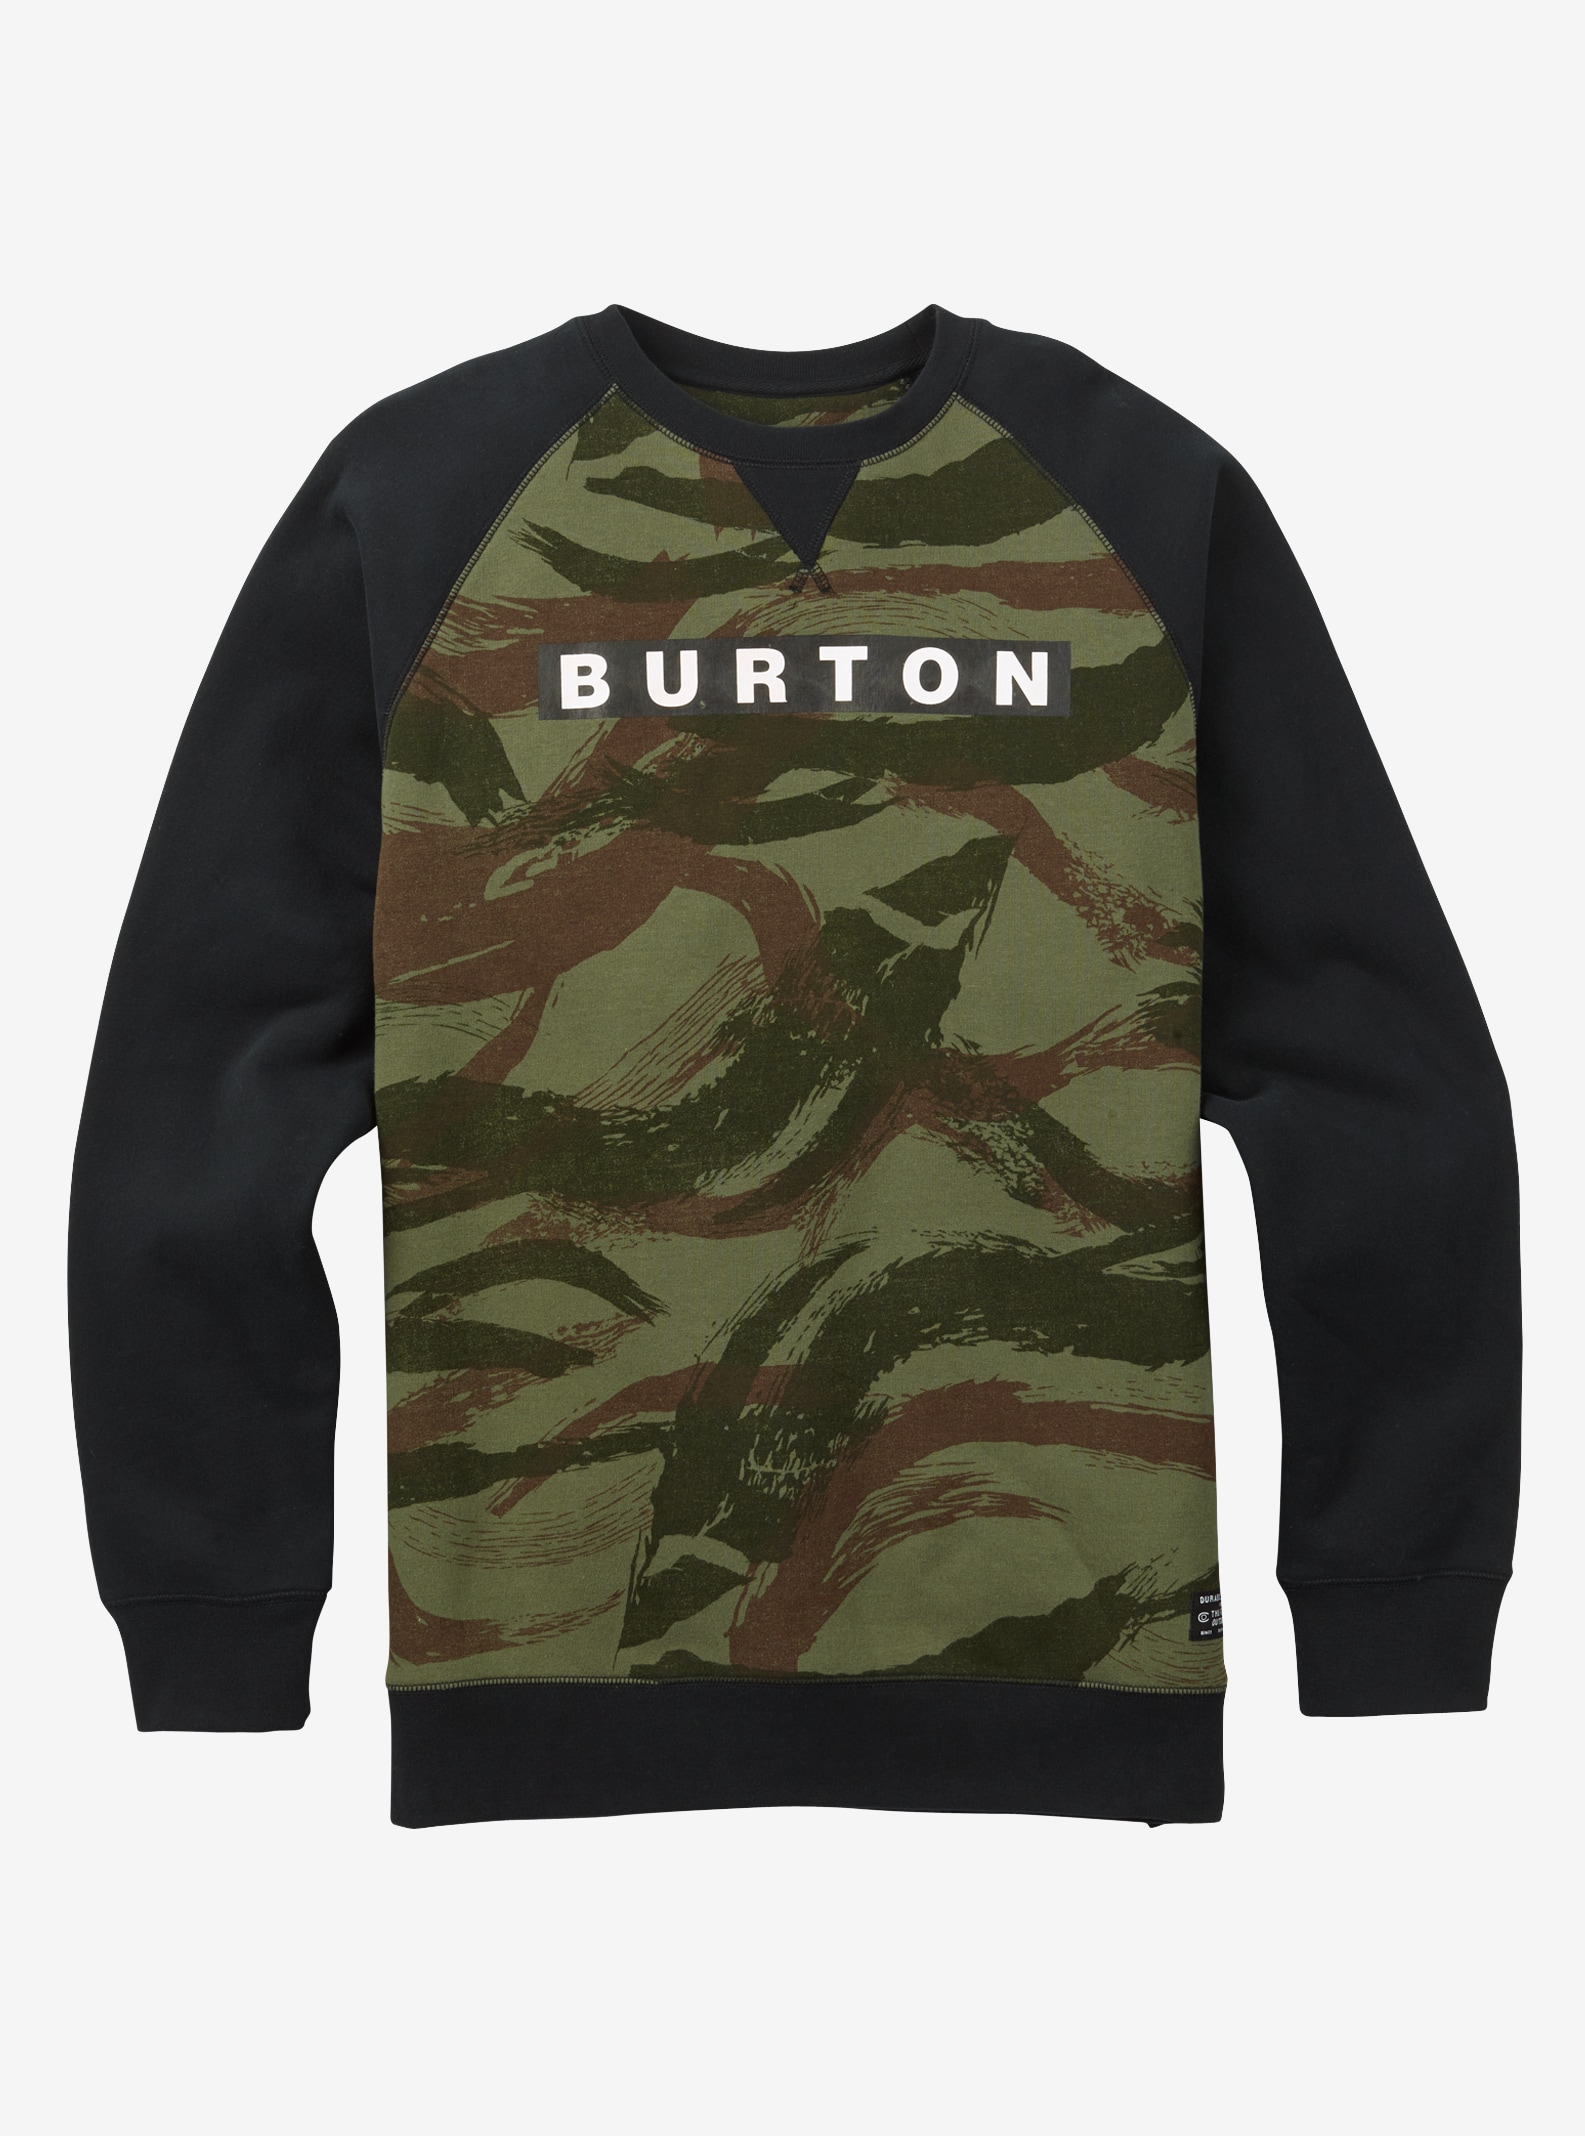 Burton Vault Crew shown in Brush Camo